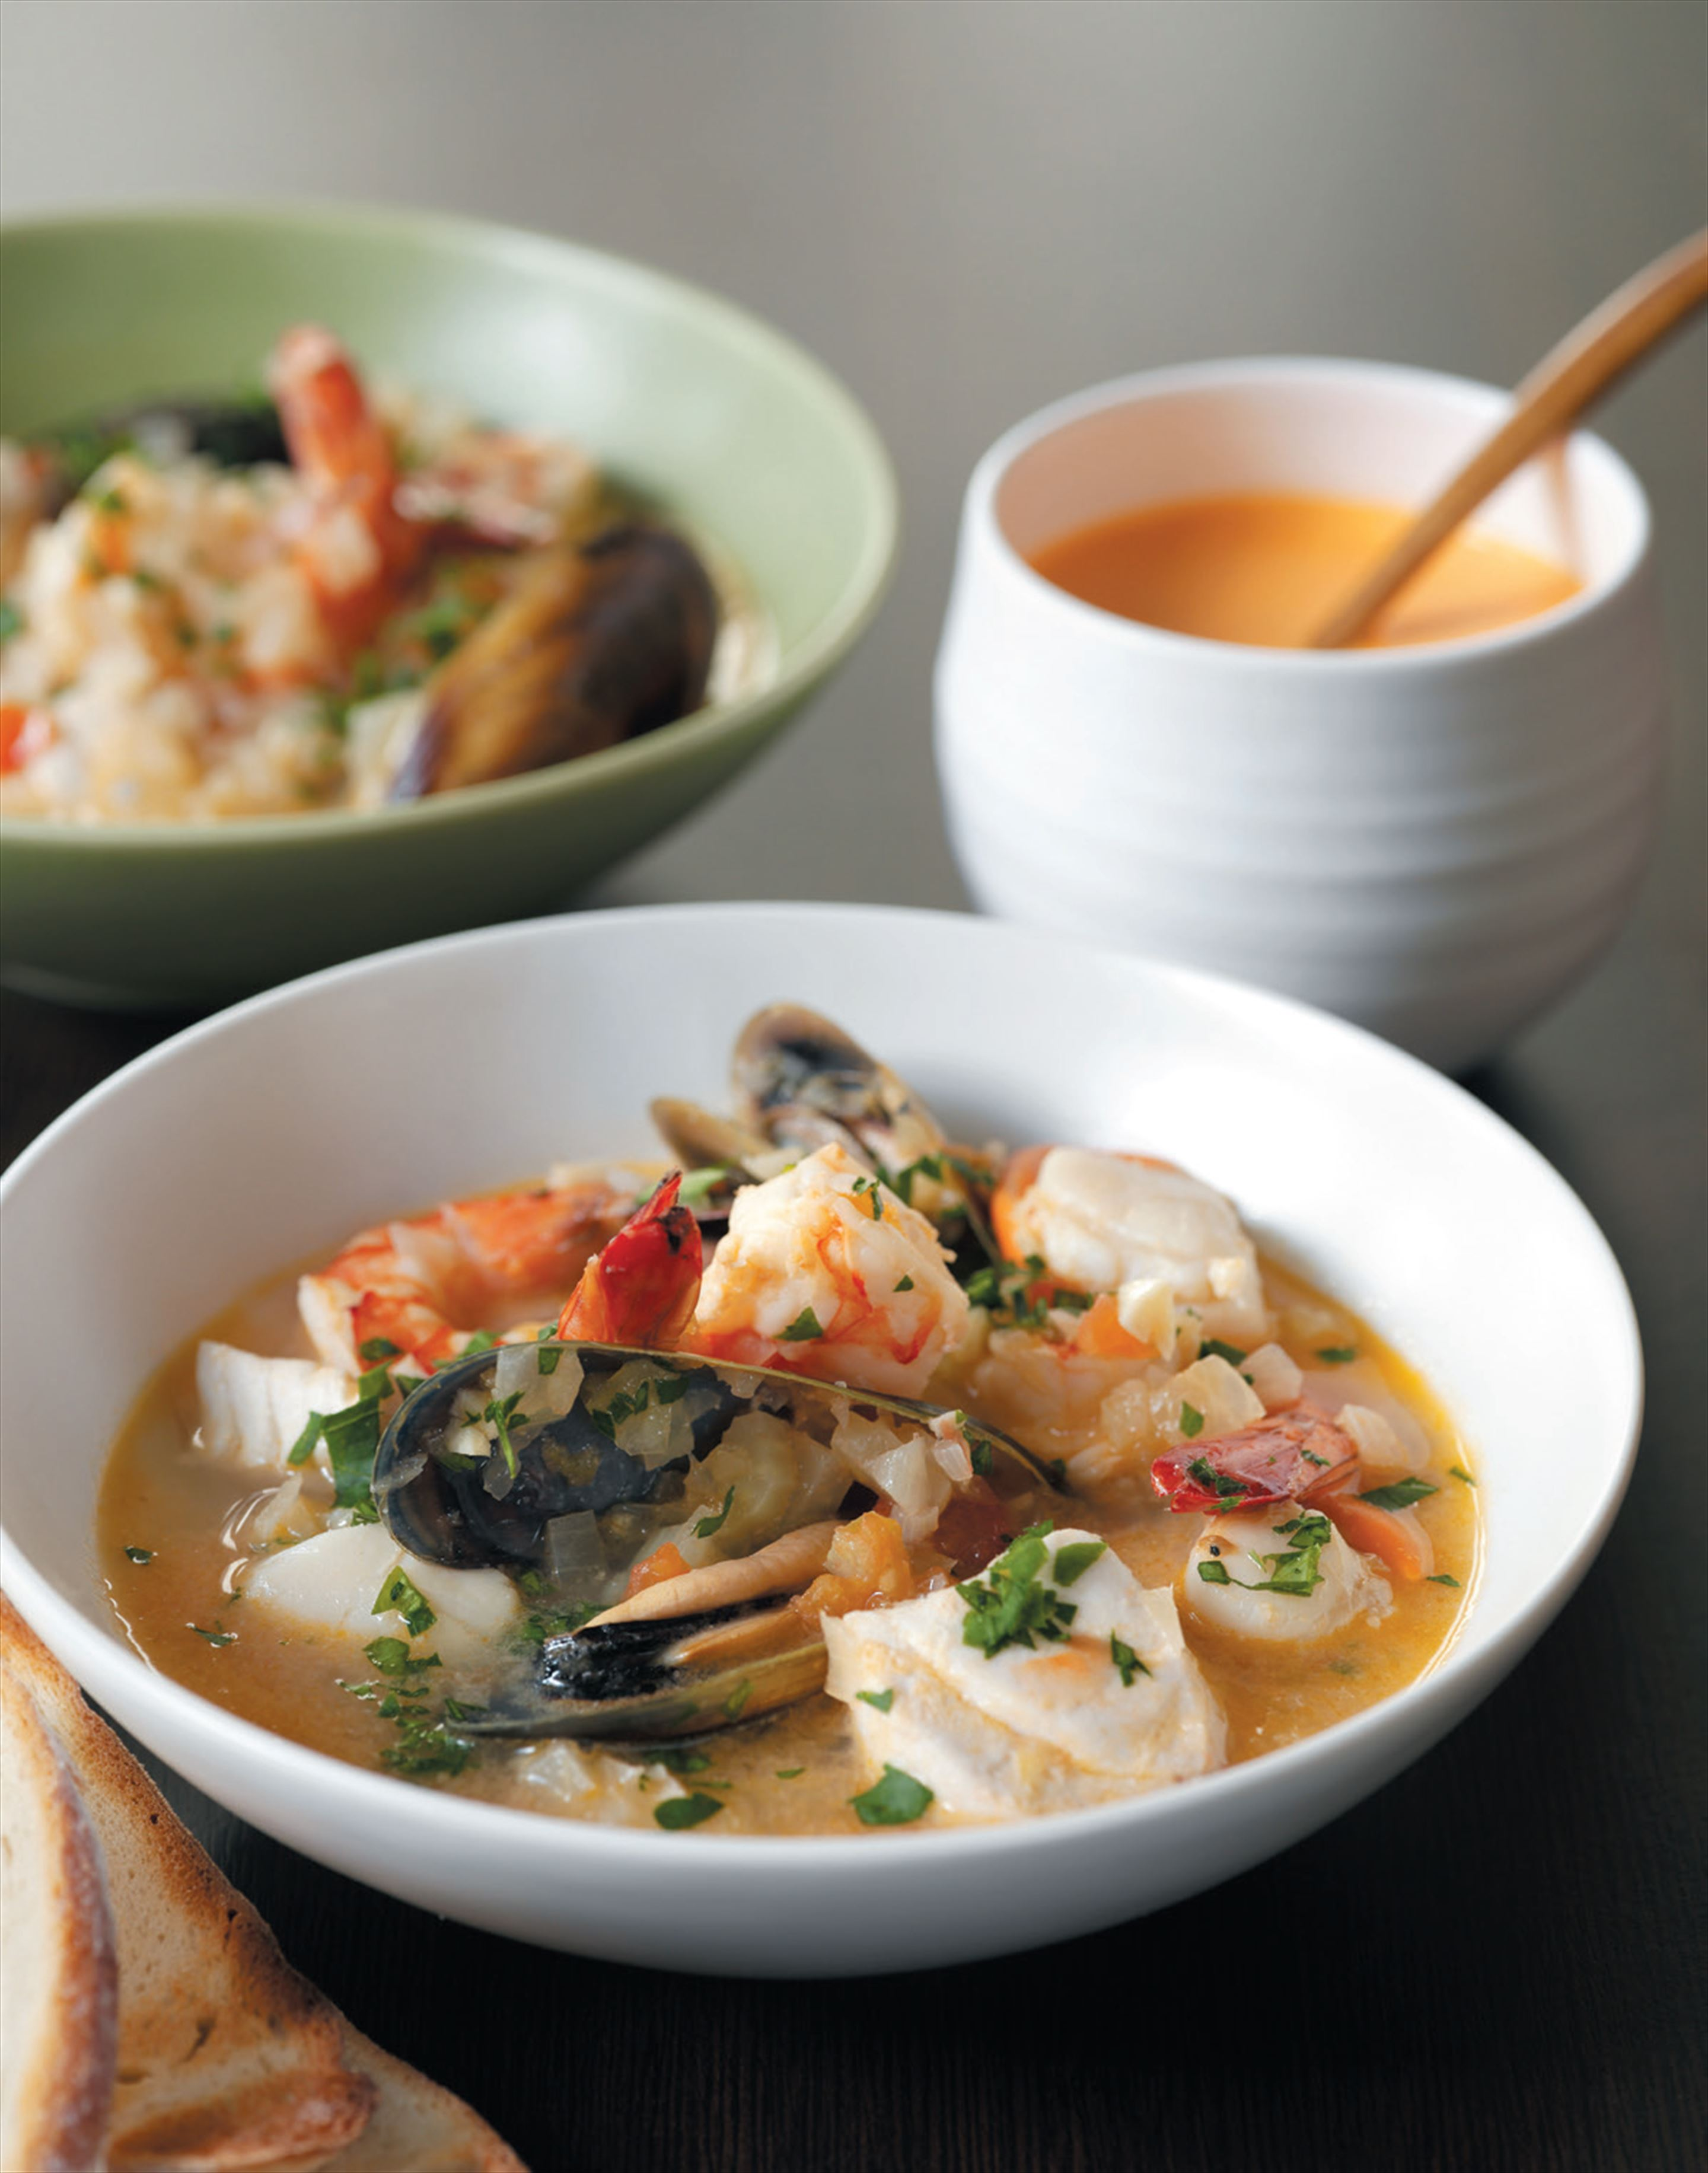 Fish stew with rouille sauce